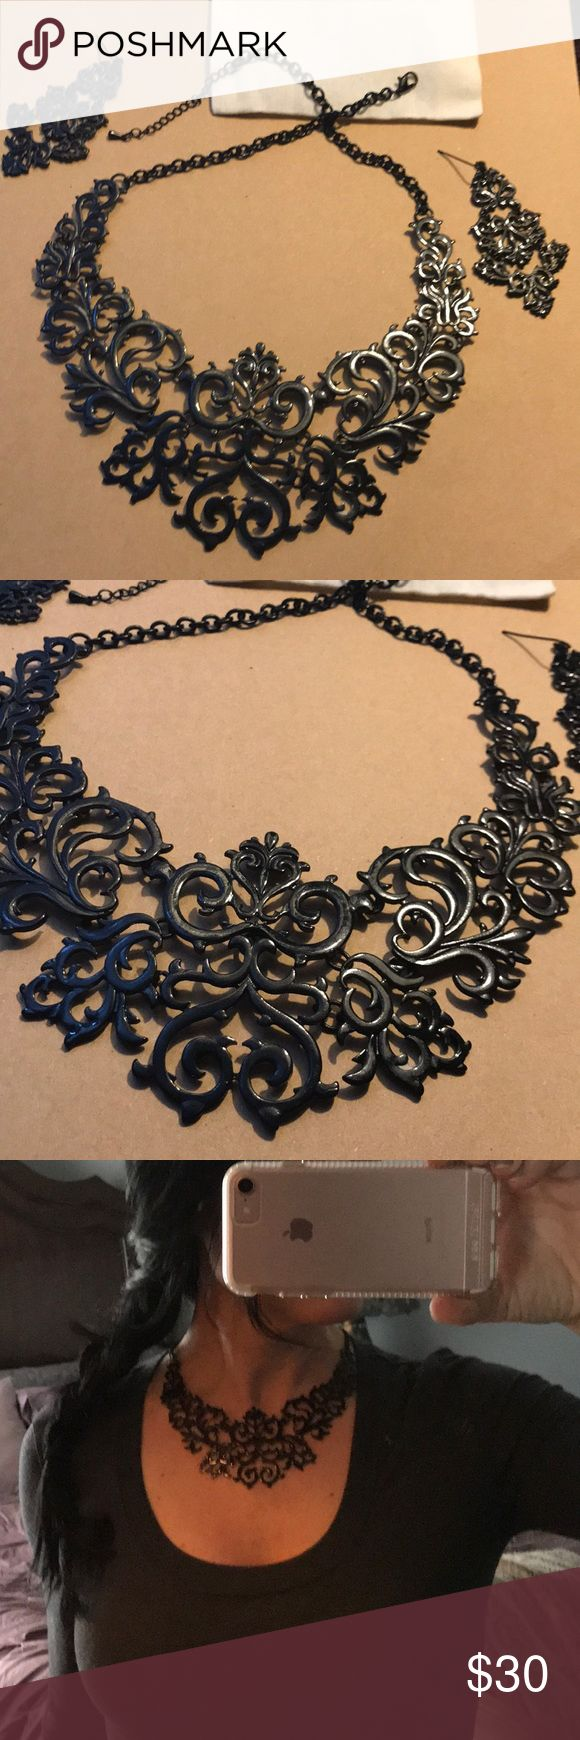 Choker-bib necklace Black enamel over metal gothic Fleur' style bib adjustable necklace, with earrings. Beautiful new cond. Jewelry Necklaces